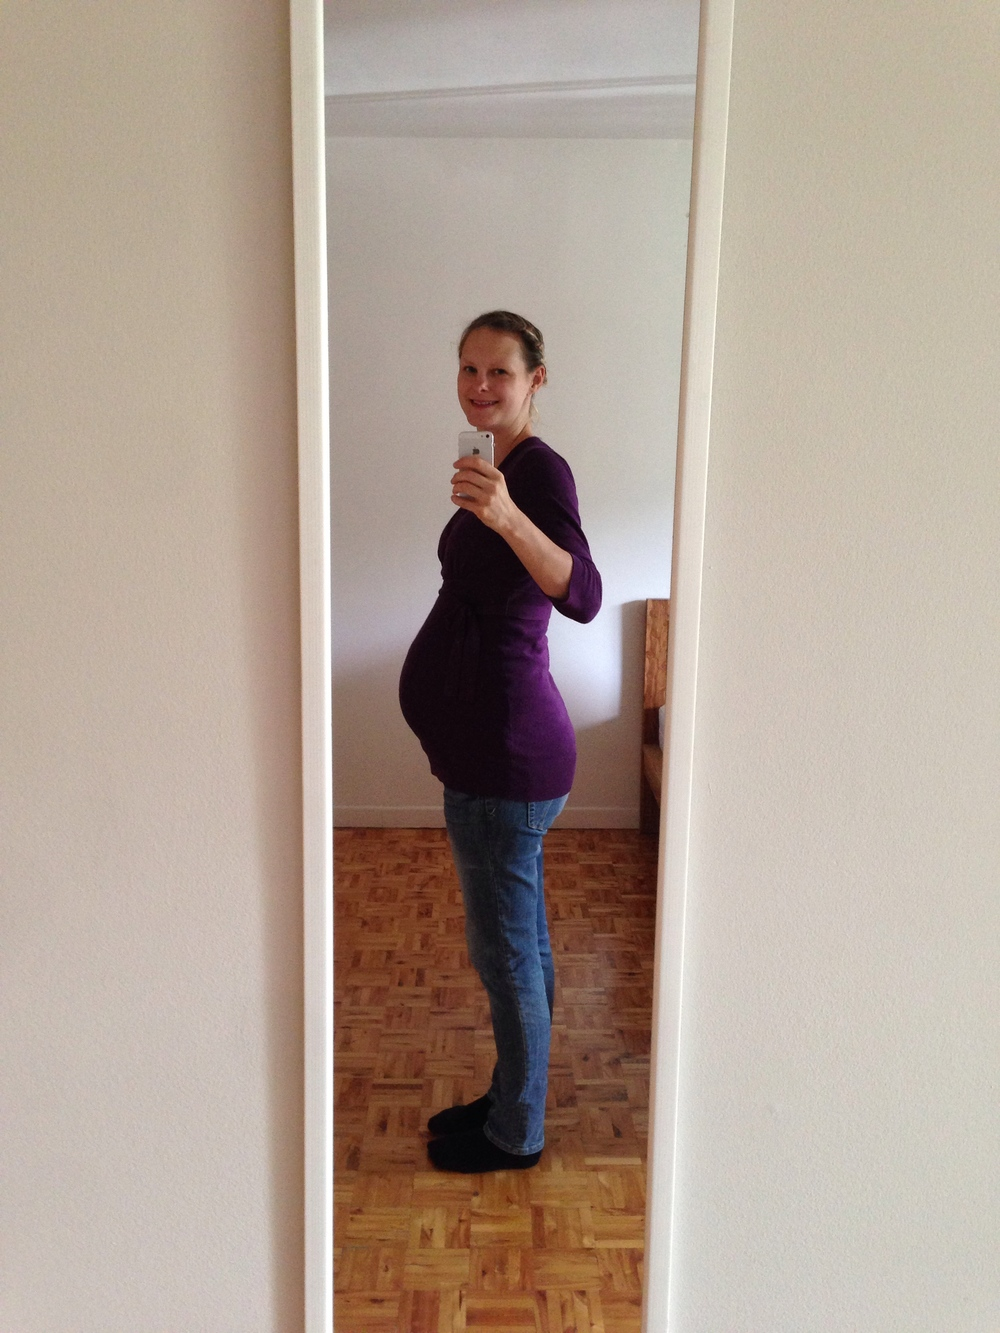 Mamas Bauch am 22. August (29 Wochen + 5 Tage)